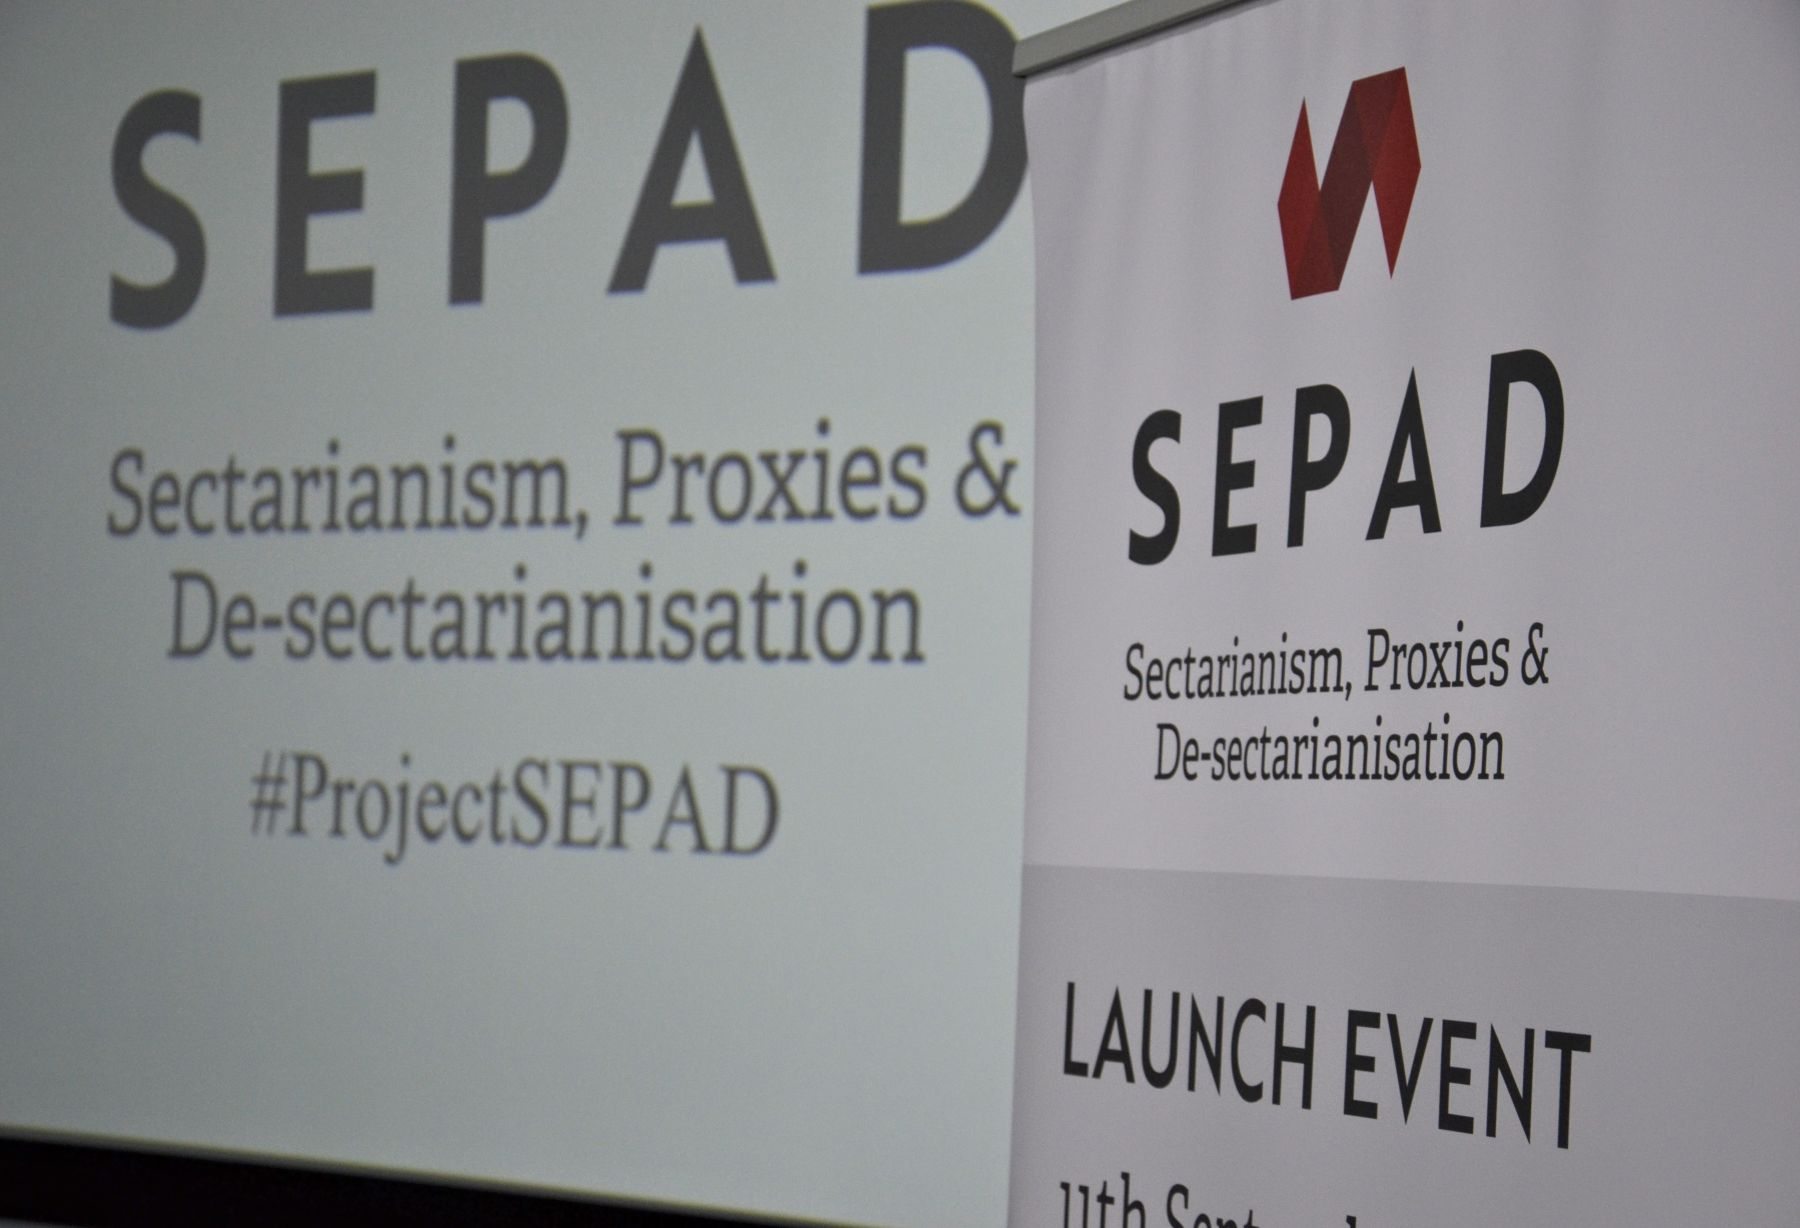 News: SEPAD receives funding from Carnegie Corporation of New York